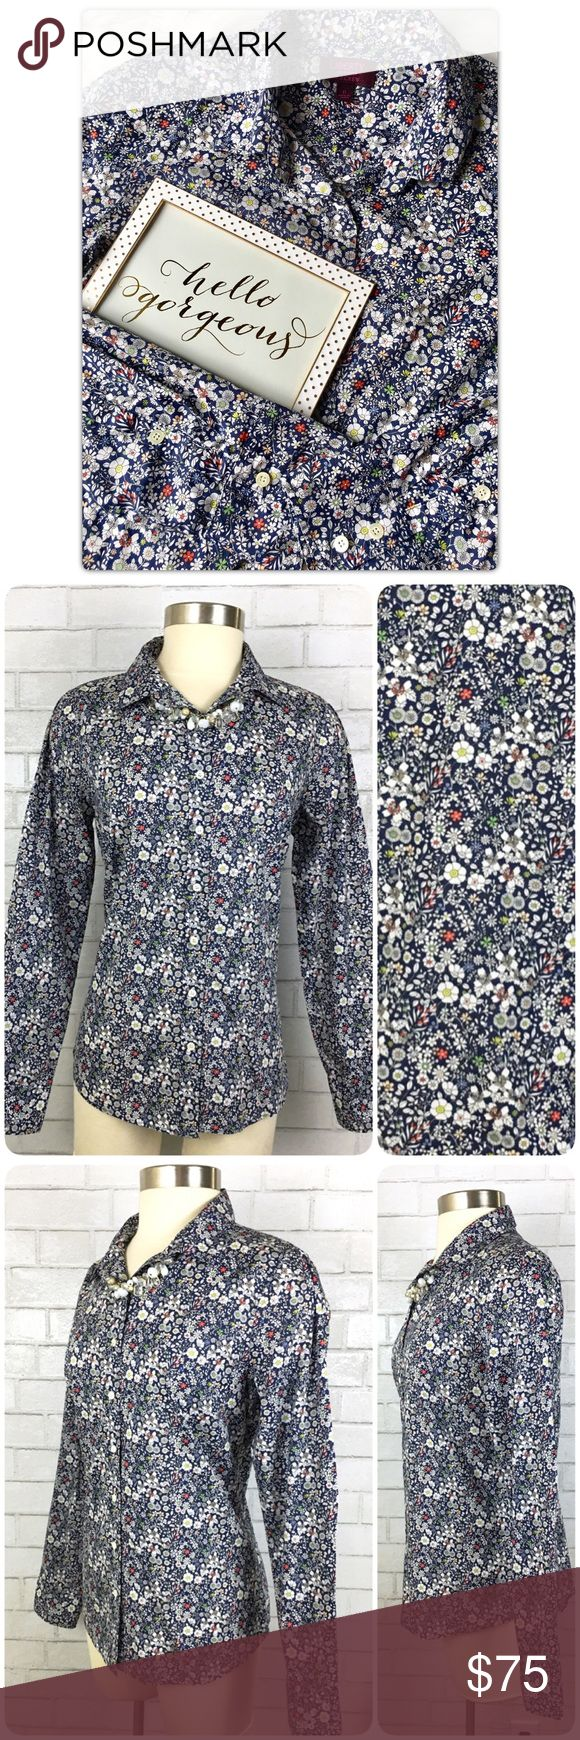 J.Crew Liberty perfect shirt June's Meadow floral This women's button down shirt is in excellent pre-owned condition! Retail:  $150  Liberty perfect shirt in June's Meadow floral  The famous perfect shirt in a signature print from London's Liberty Art Fabrics (famous for its eye-popping florals and paisleys since 1875). Features impeccable tailoring with precisely placed bust darts and back princess darts for a slimming, waist-defining fit that's a bit more feminine than the boy shirt…